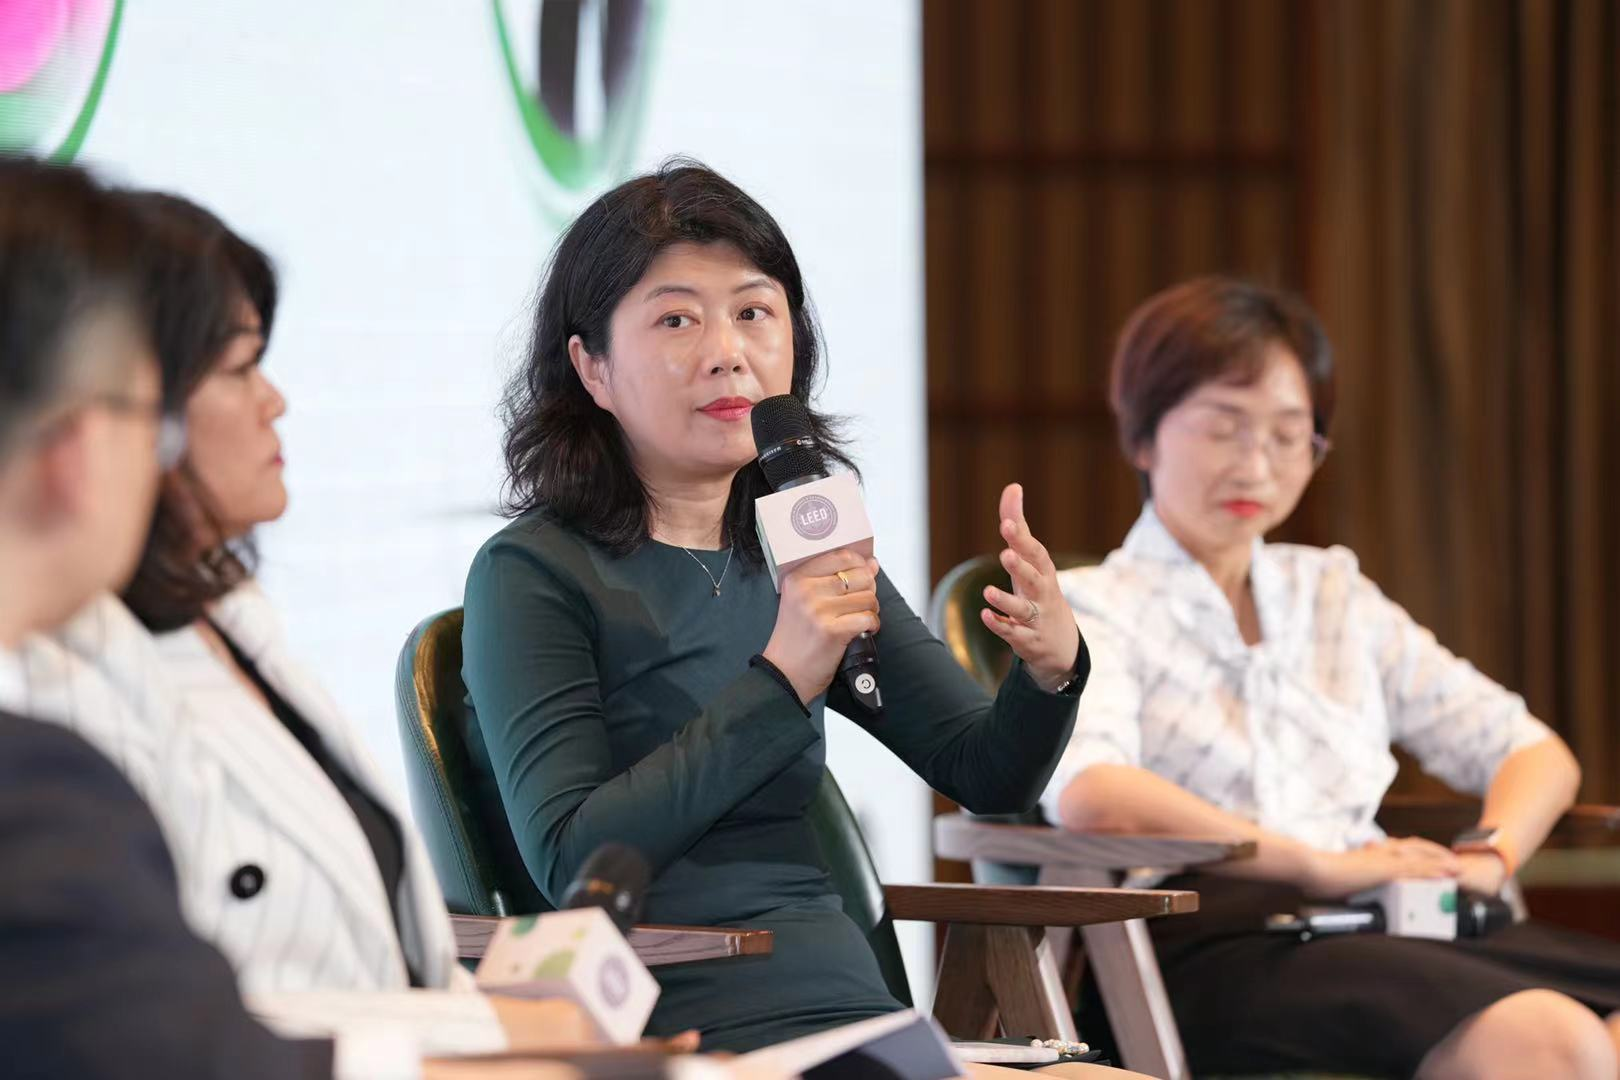 Dou Zhang sits on stage with three other panelists and a microphone in her hand, speaking